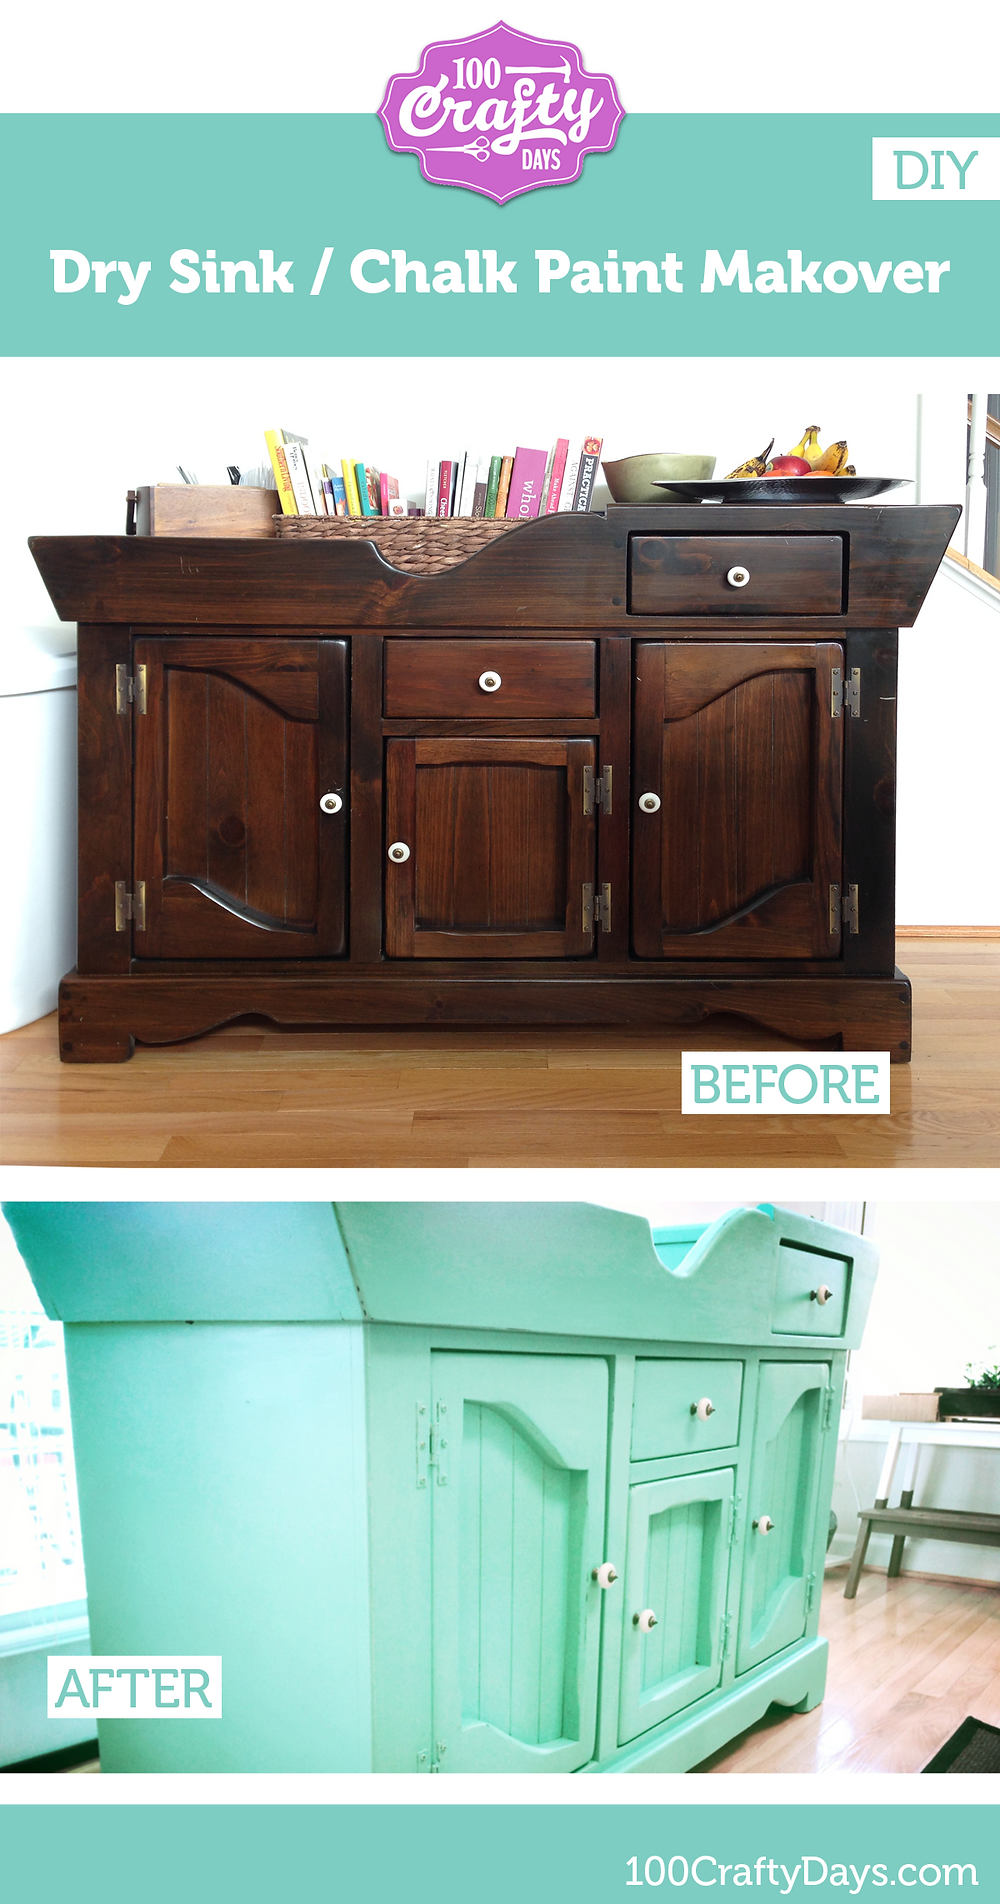 100 Crafty Days, Day 55 Dry Sink Makeover